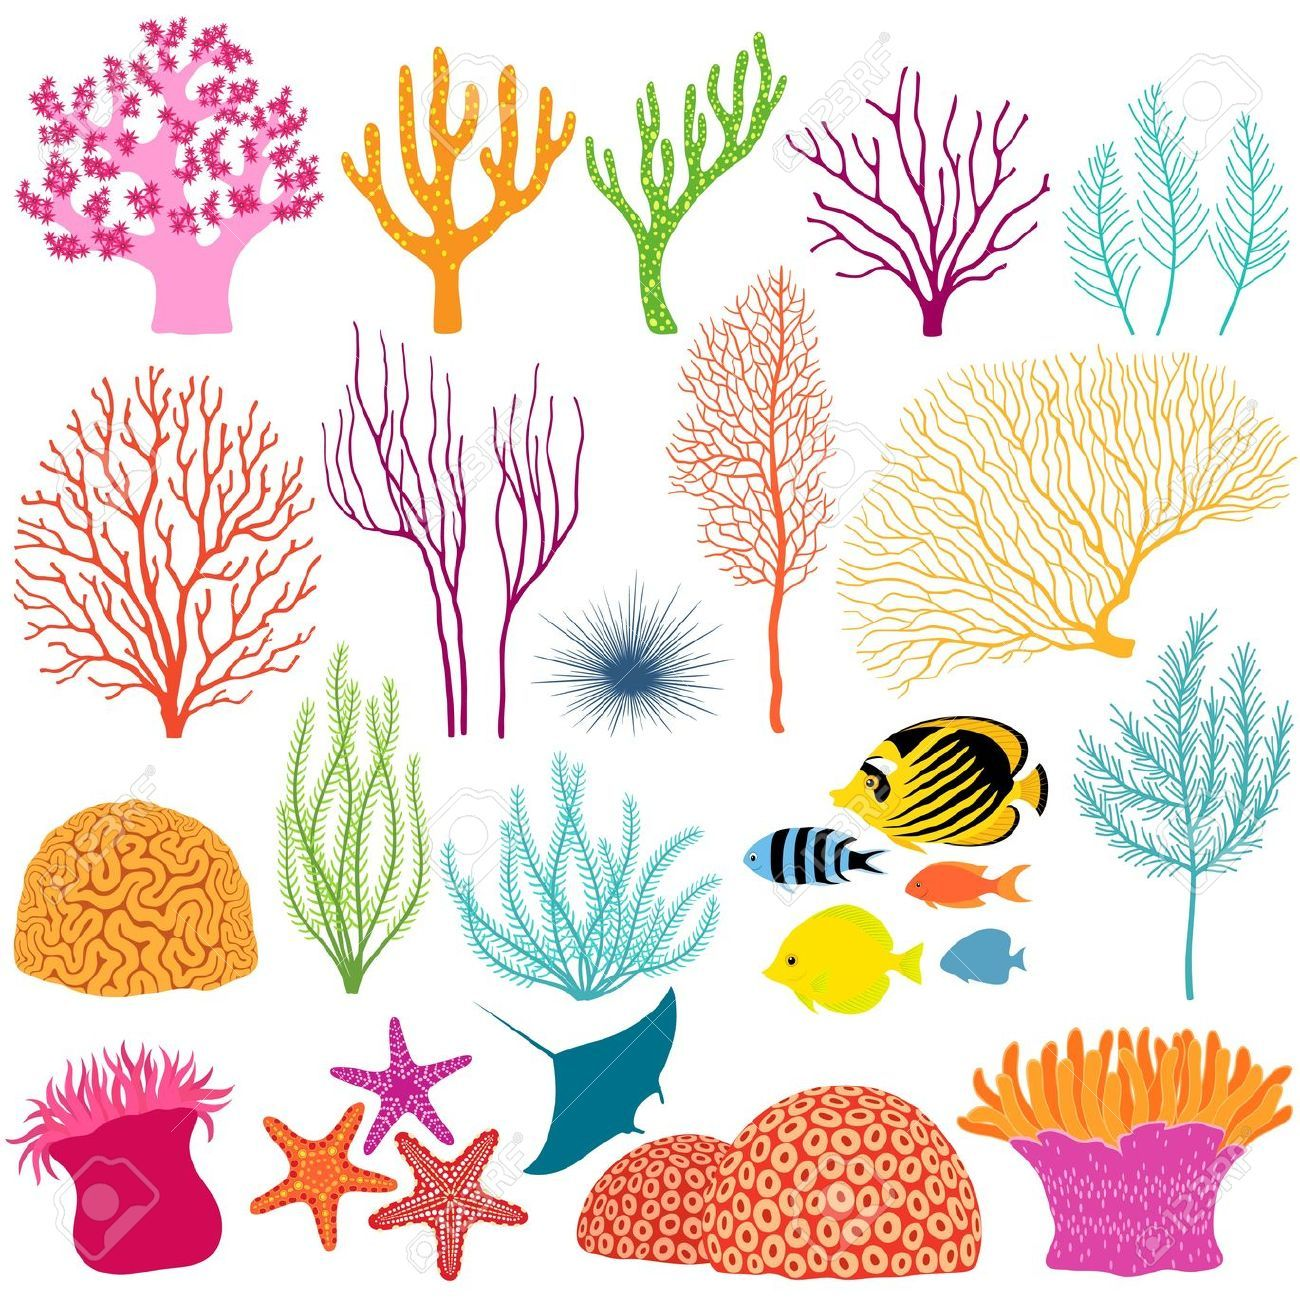 Coral Reef Underwater Stock Vector Illustration And Royalty Free